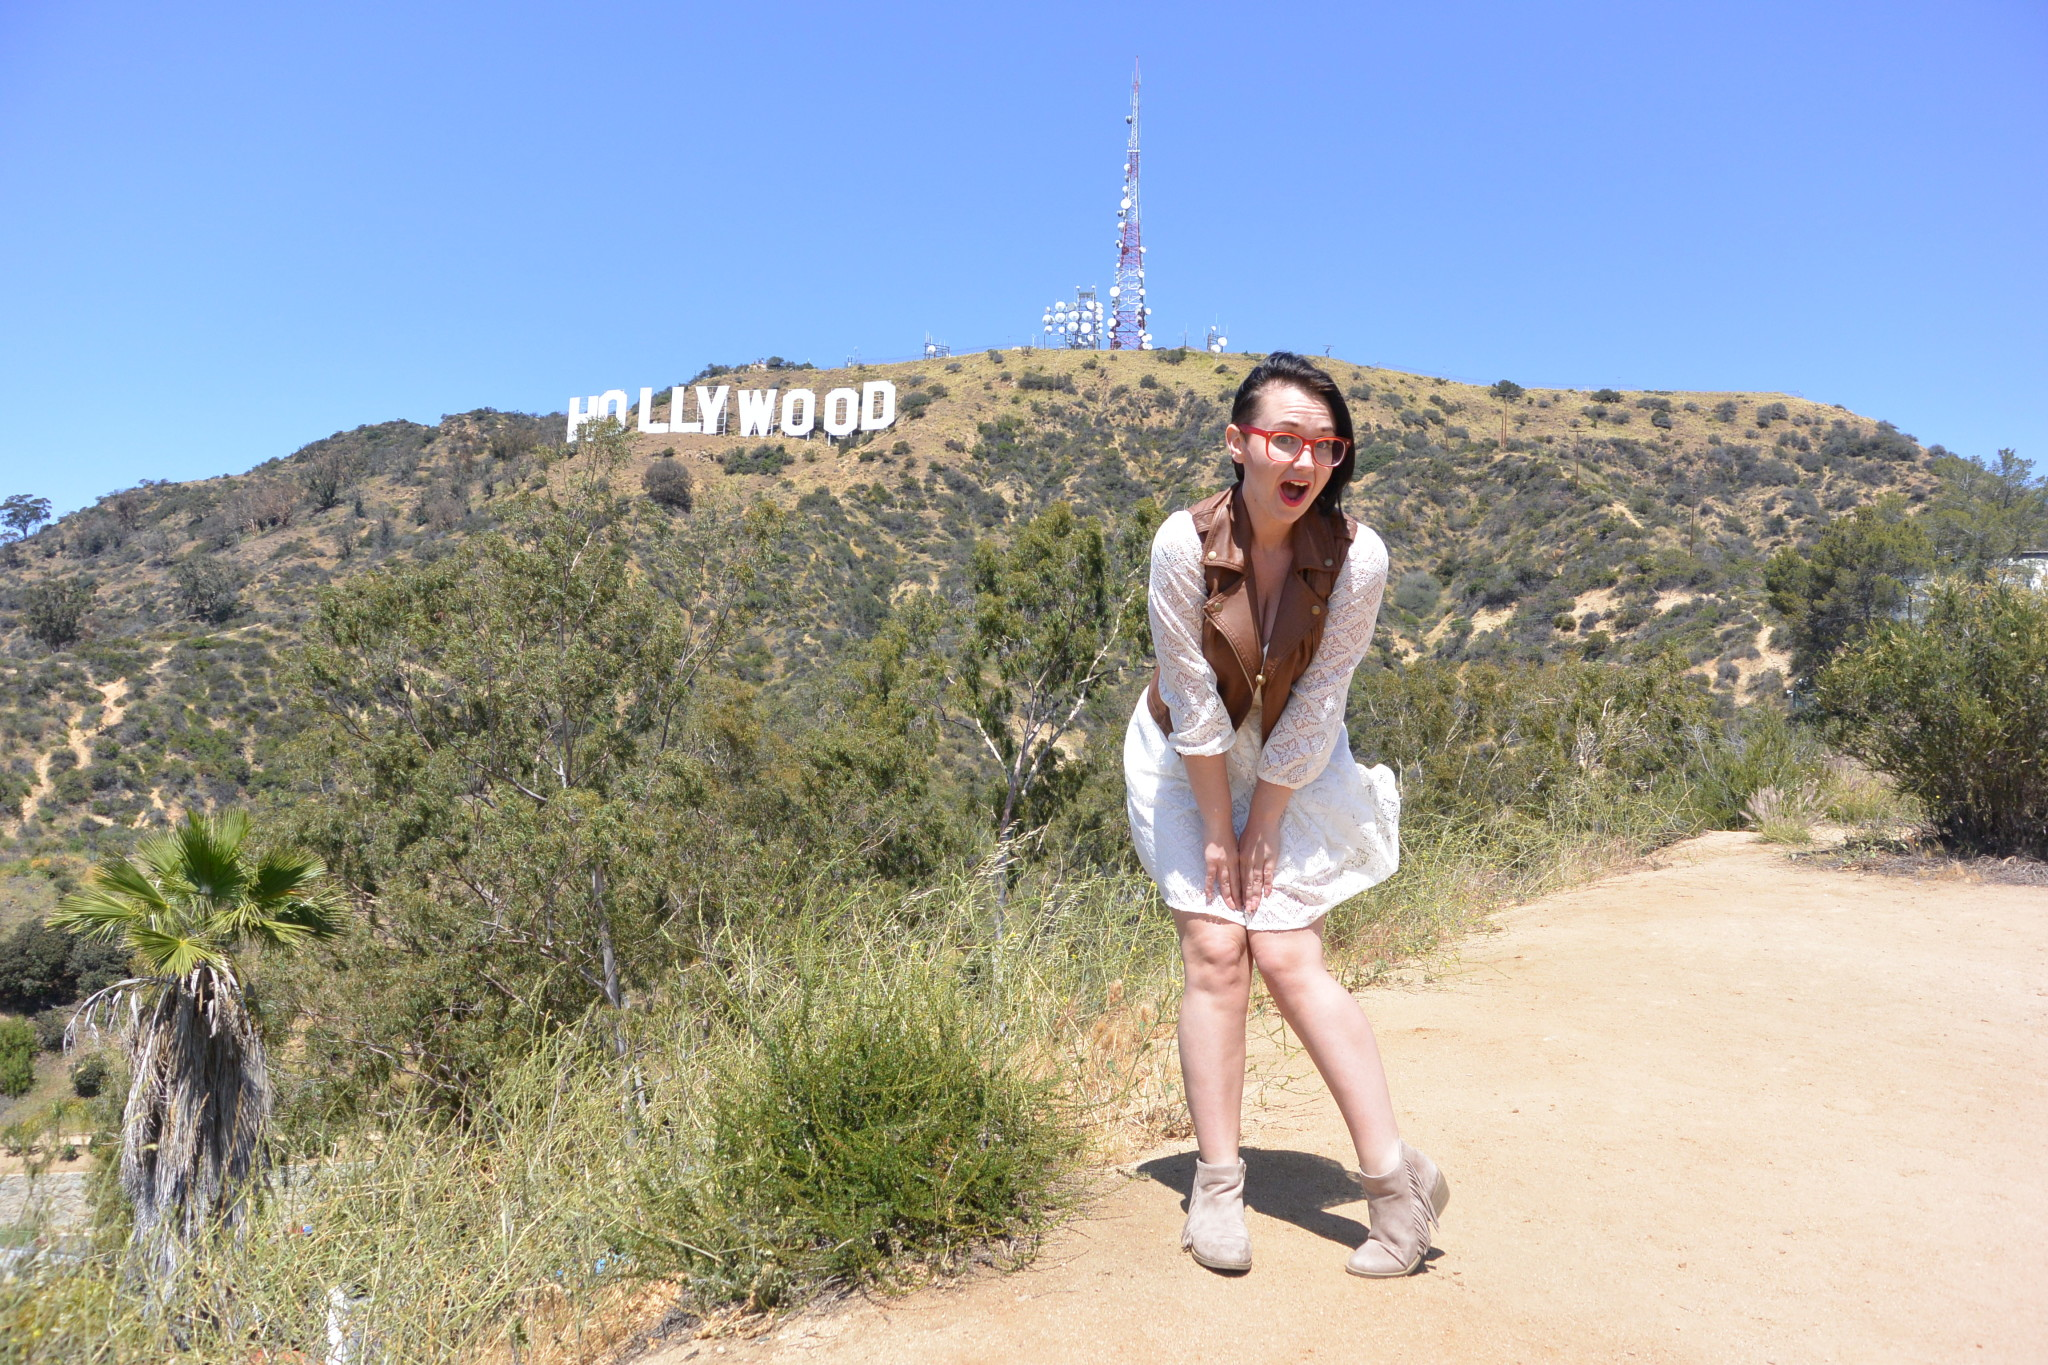 Lesbian Travel Guide: Los Angeles, California